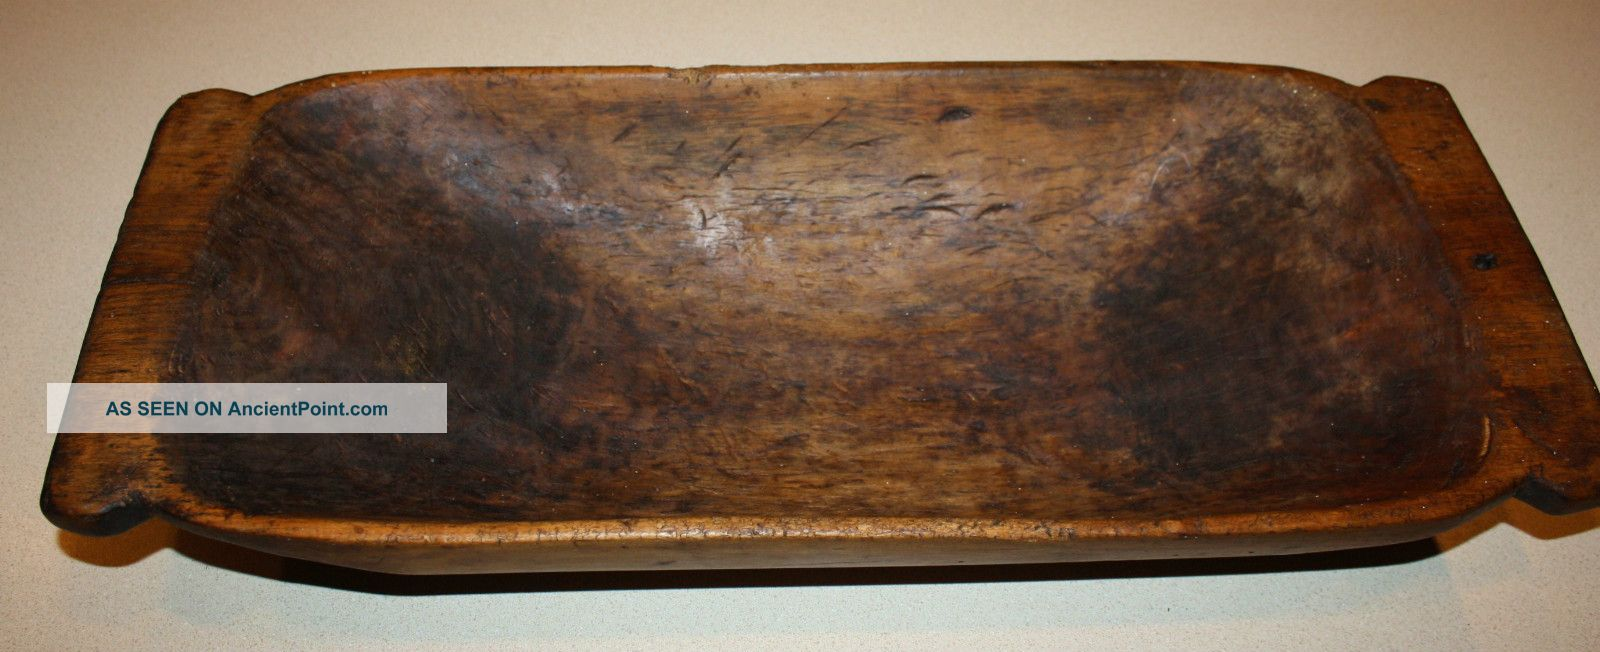 Antique Primitive Carved Wooden Dough Bowl; Old Hand - Hewn Country ...